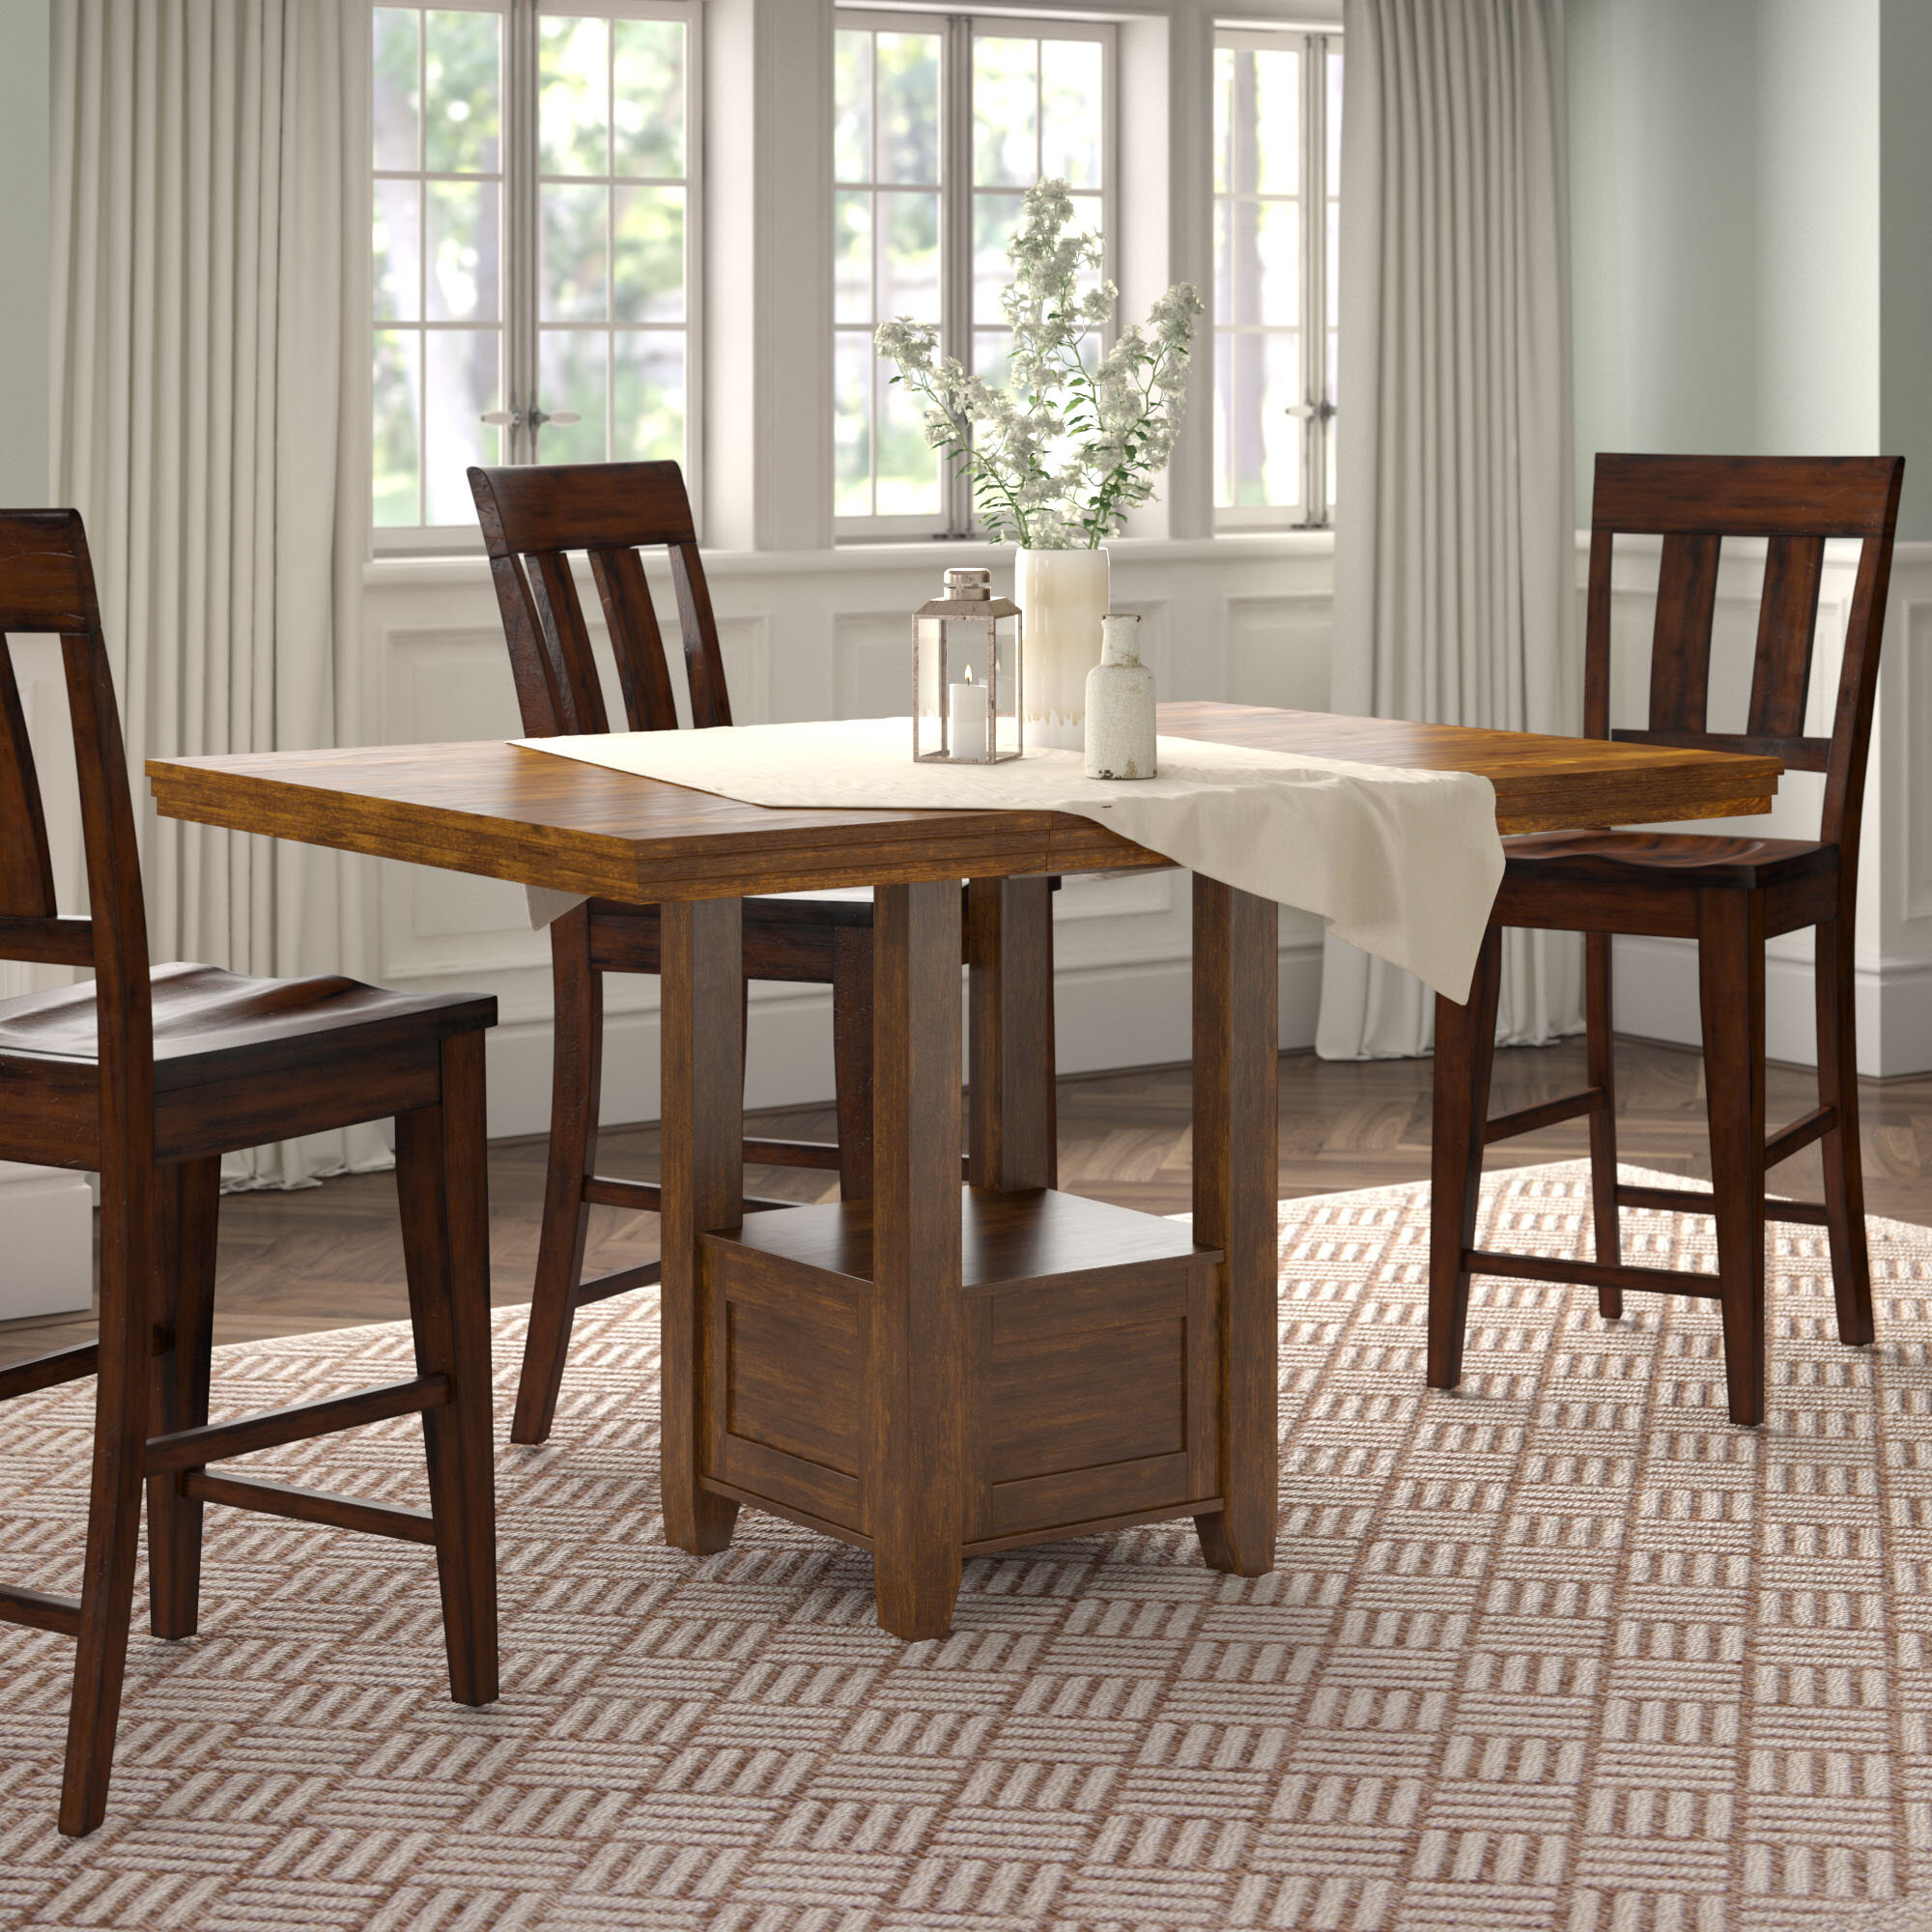 Phenomenal 60 Inch Counter Height Table Wayfair Home Interior And Landscaping Ferensignezvosmurscom